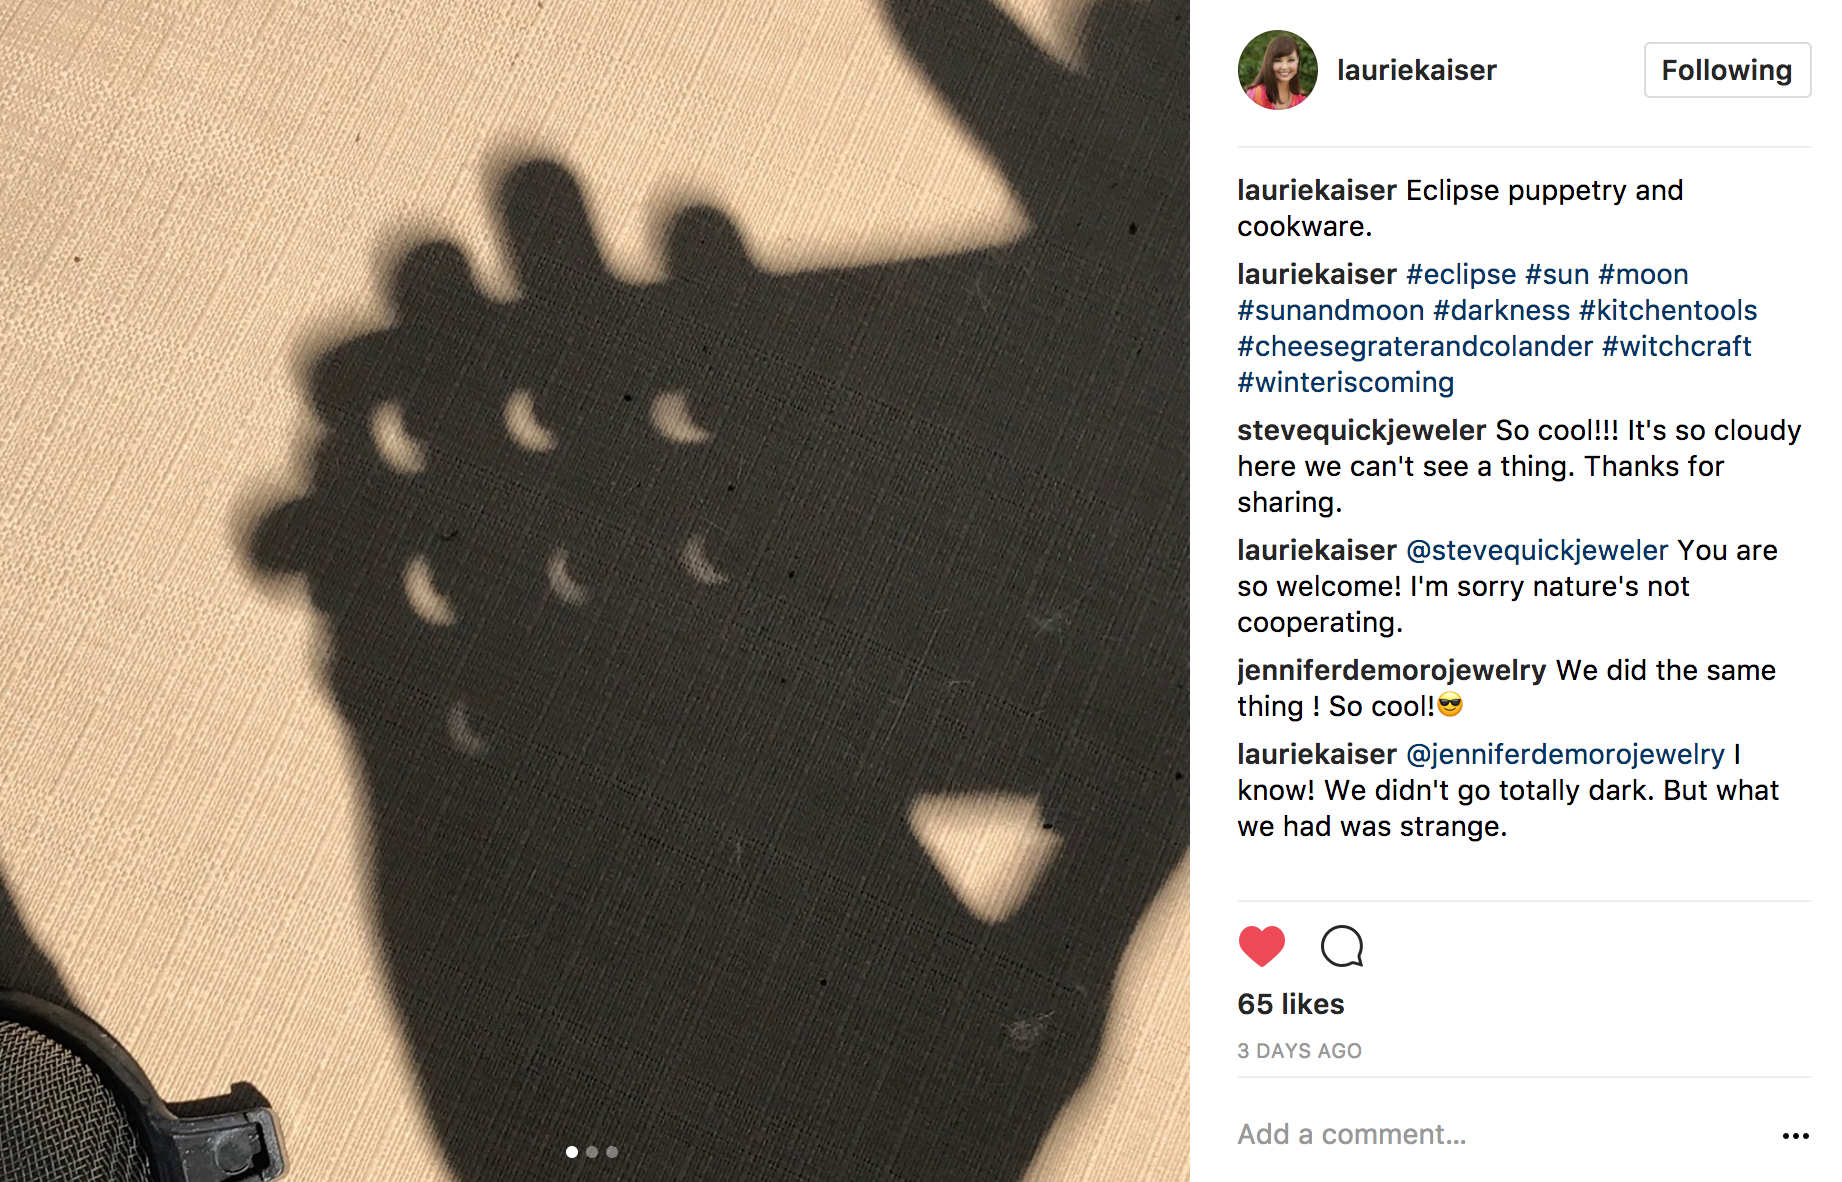 Instagram eclipse puppetry and cookware